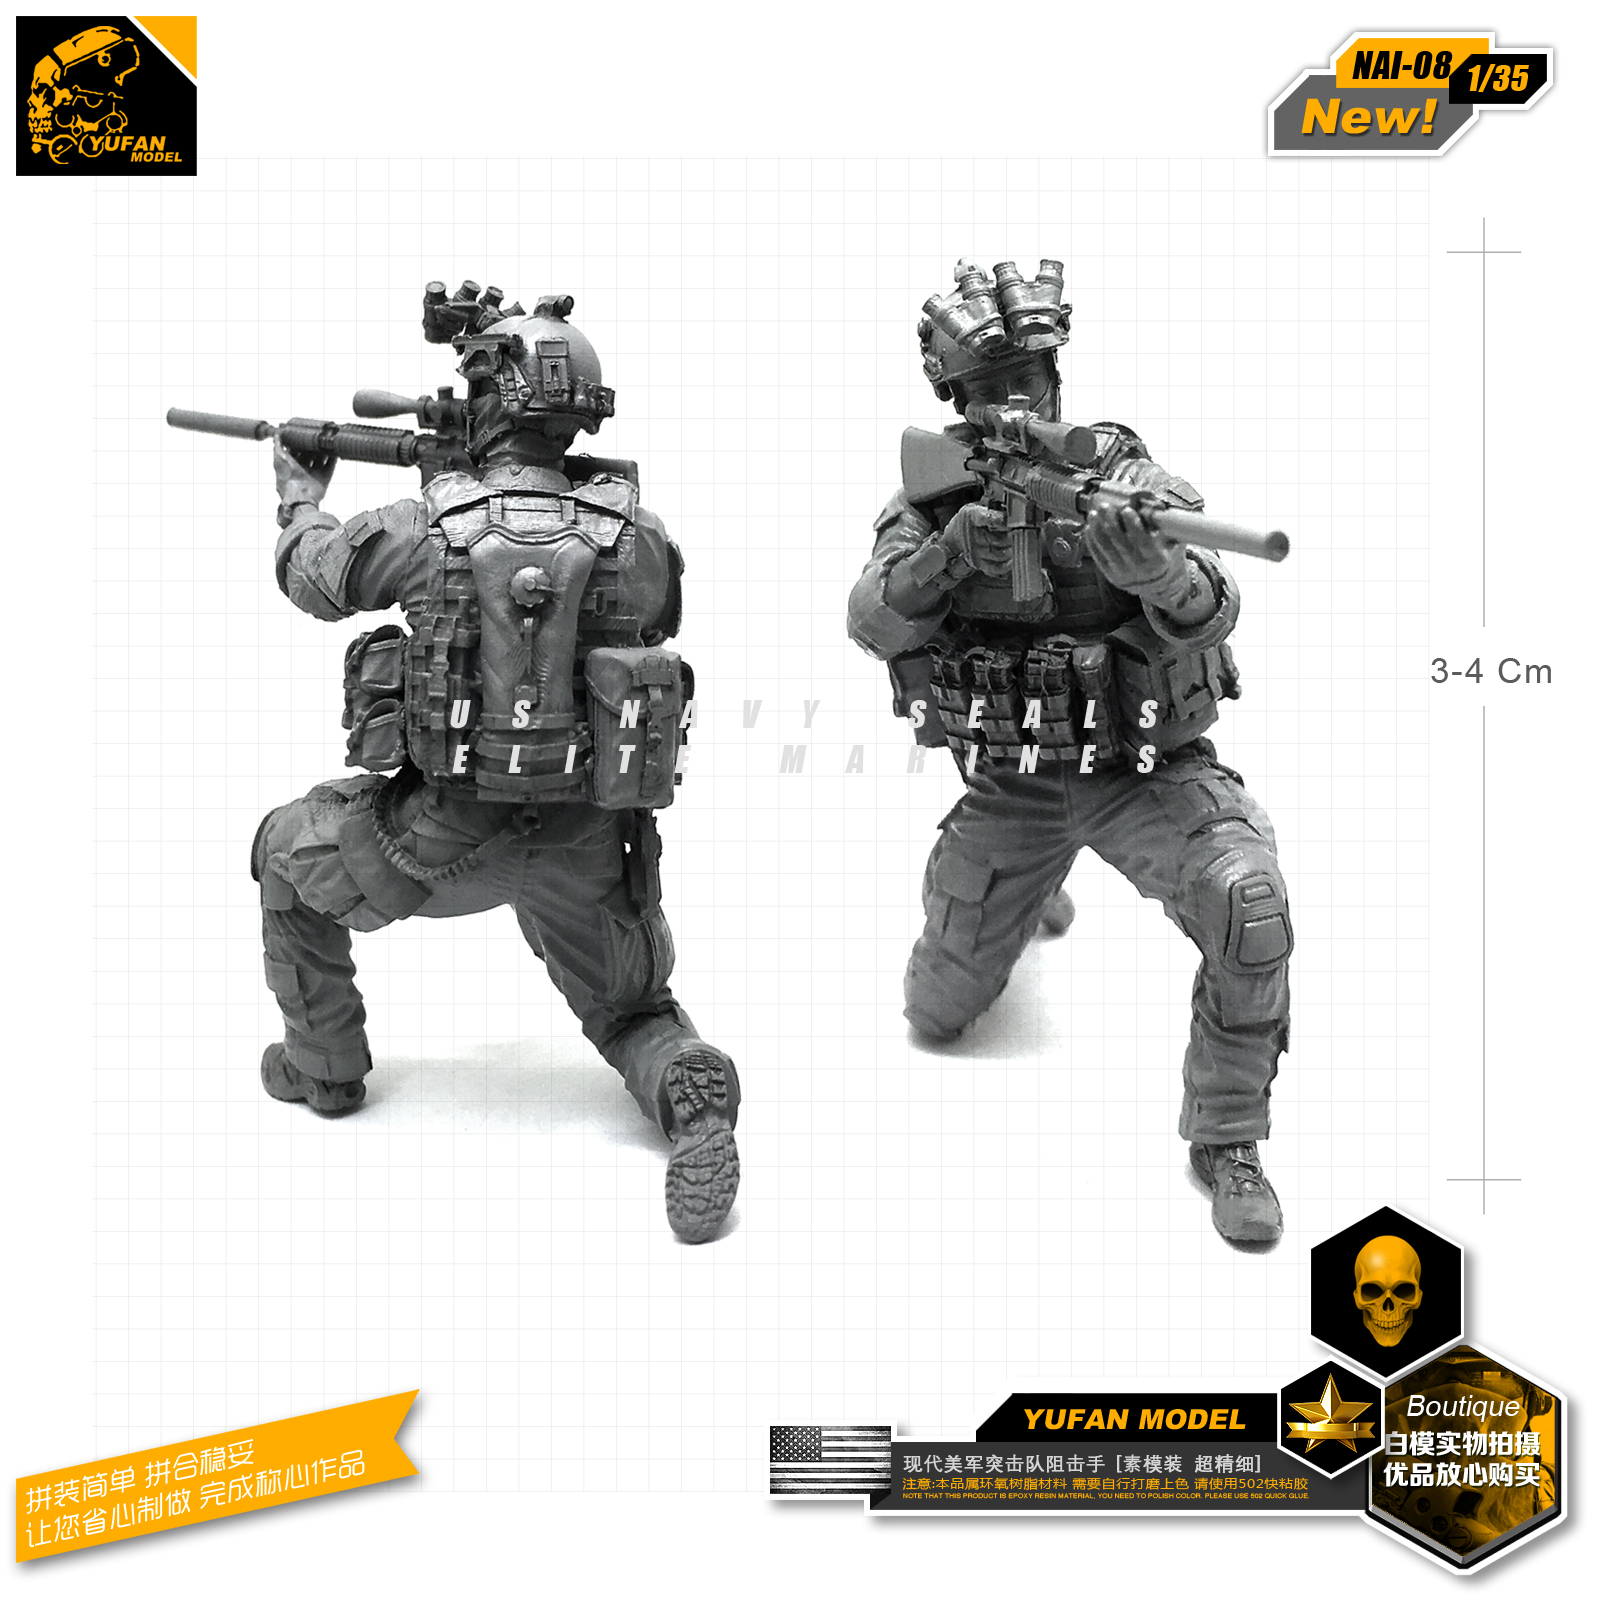 Yufan Model 1/35 Resin  Figure Modern American Commando Sniper Resin Soldier Model Accessories Kits Unmounted  Nai-08